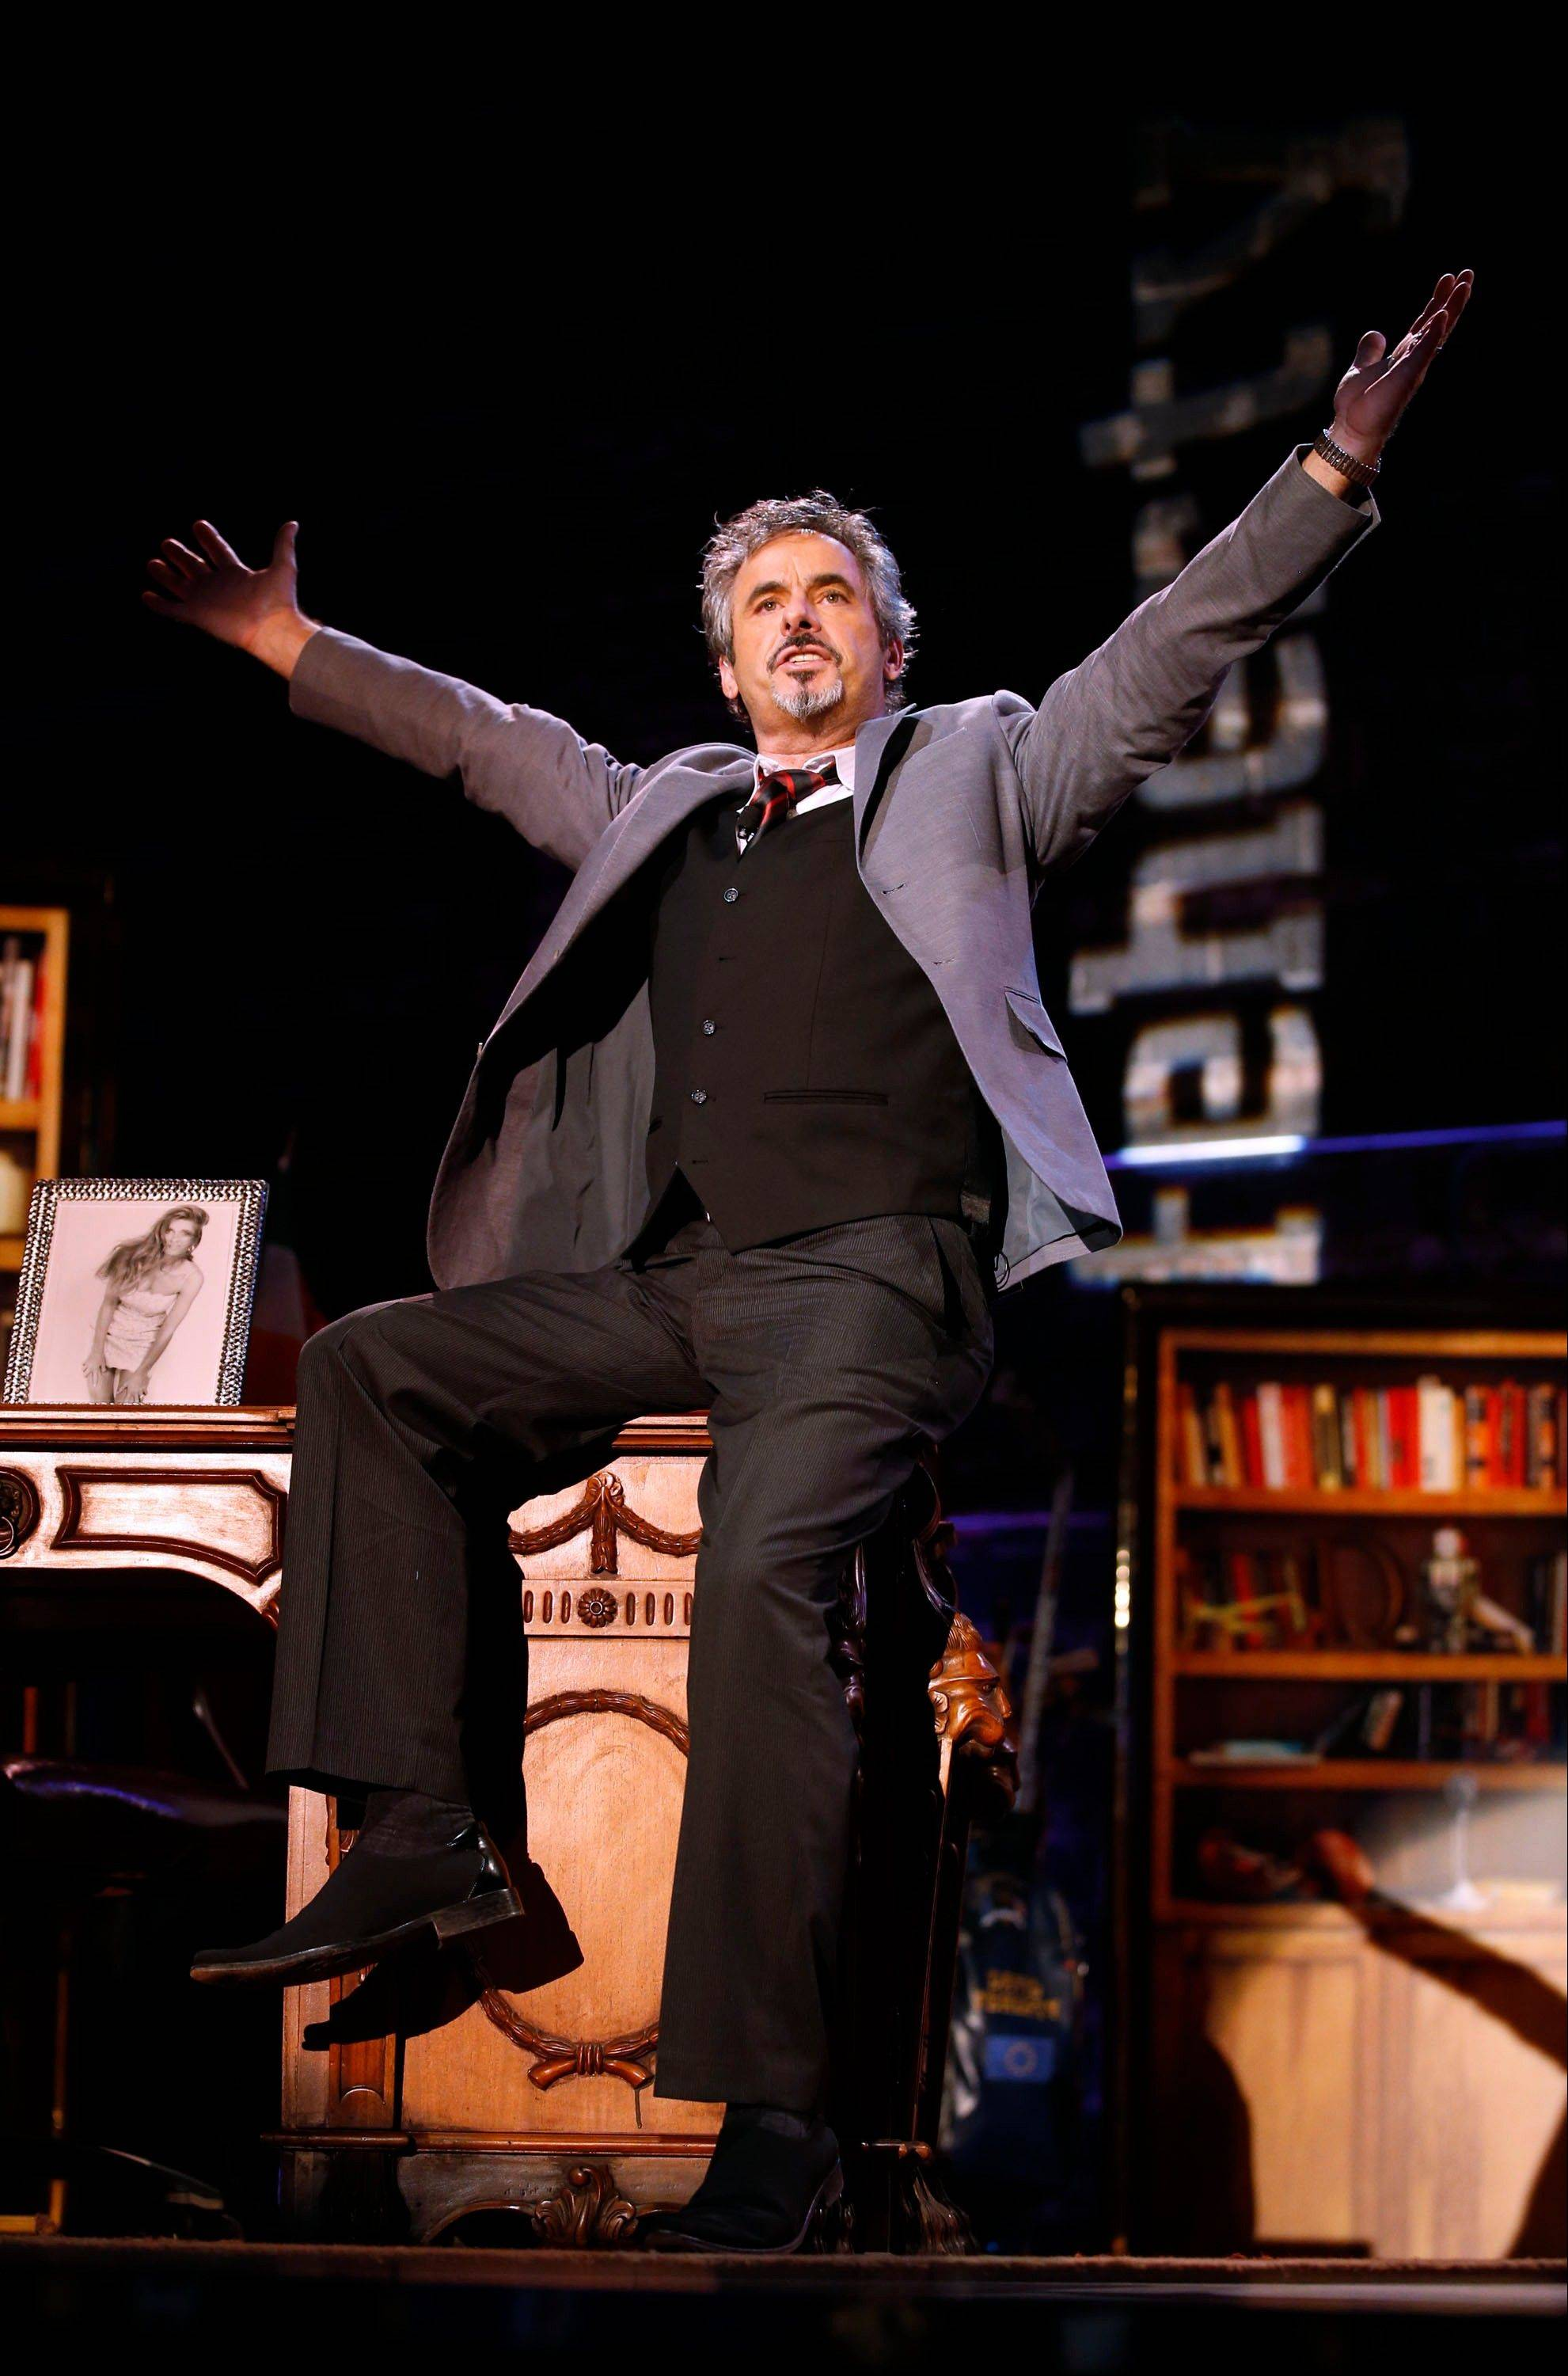 David Feherty has fun with the audience Monday at Golf Channel's 'Feherty Live From the Ryder Cup' at the Tivoli Theatre in Downers Grove.